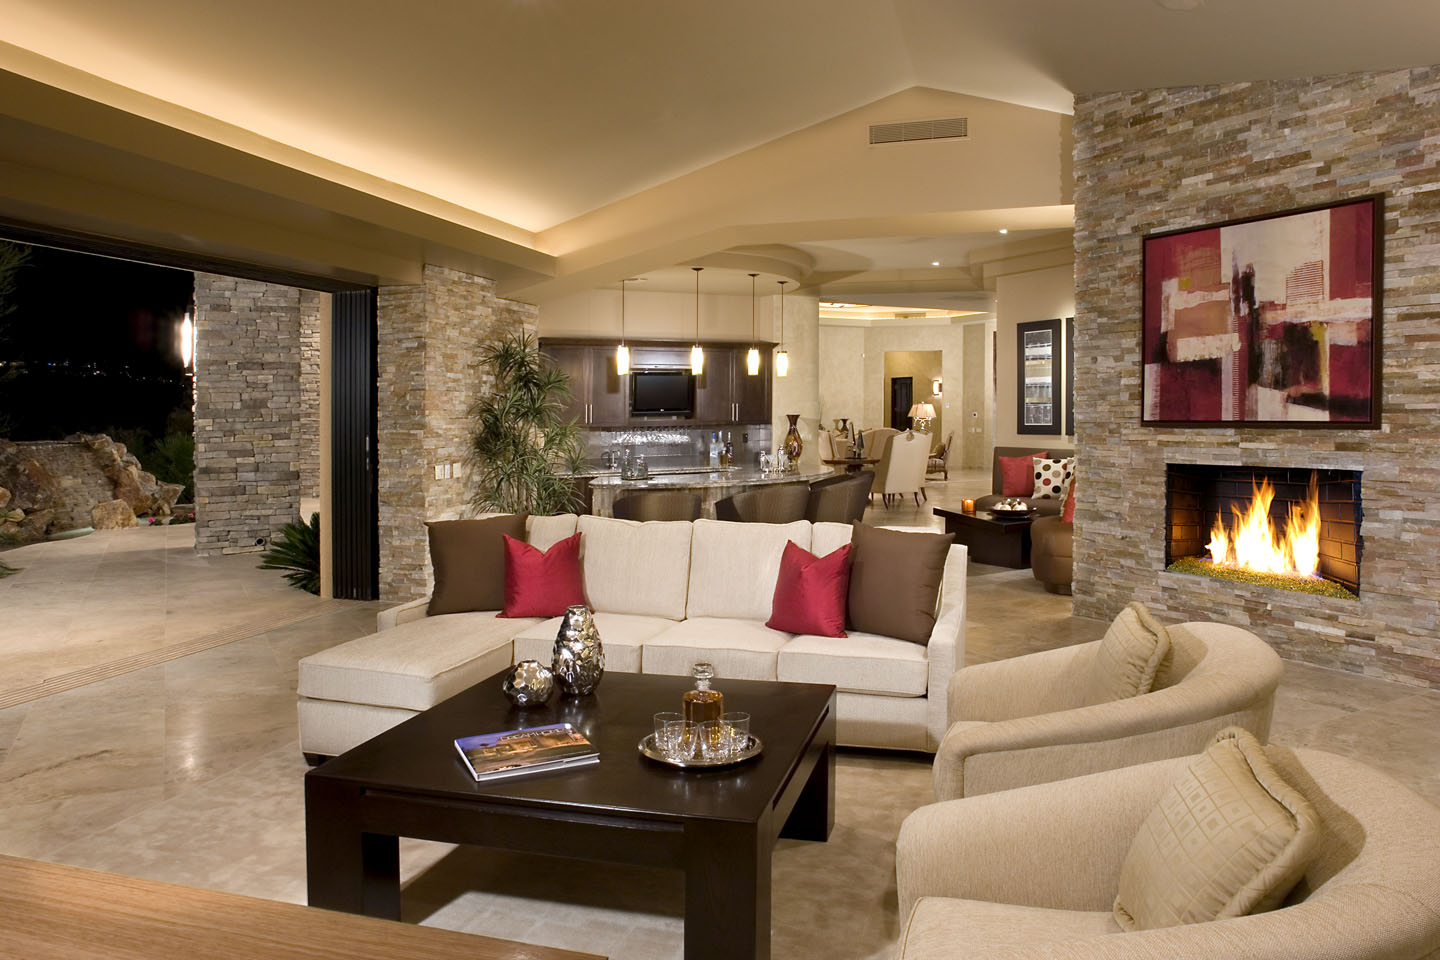 Rock your home with stone interior accents Images of home interior